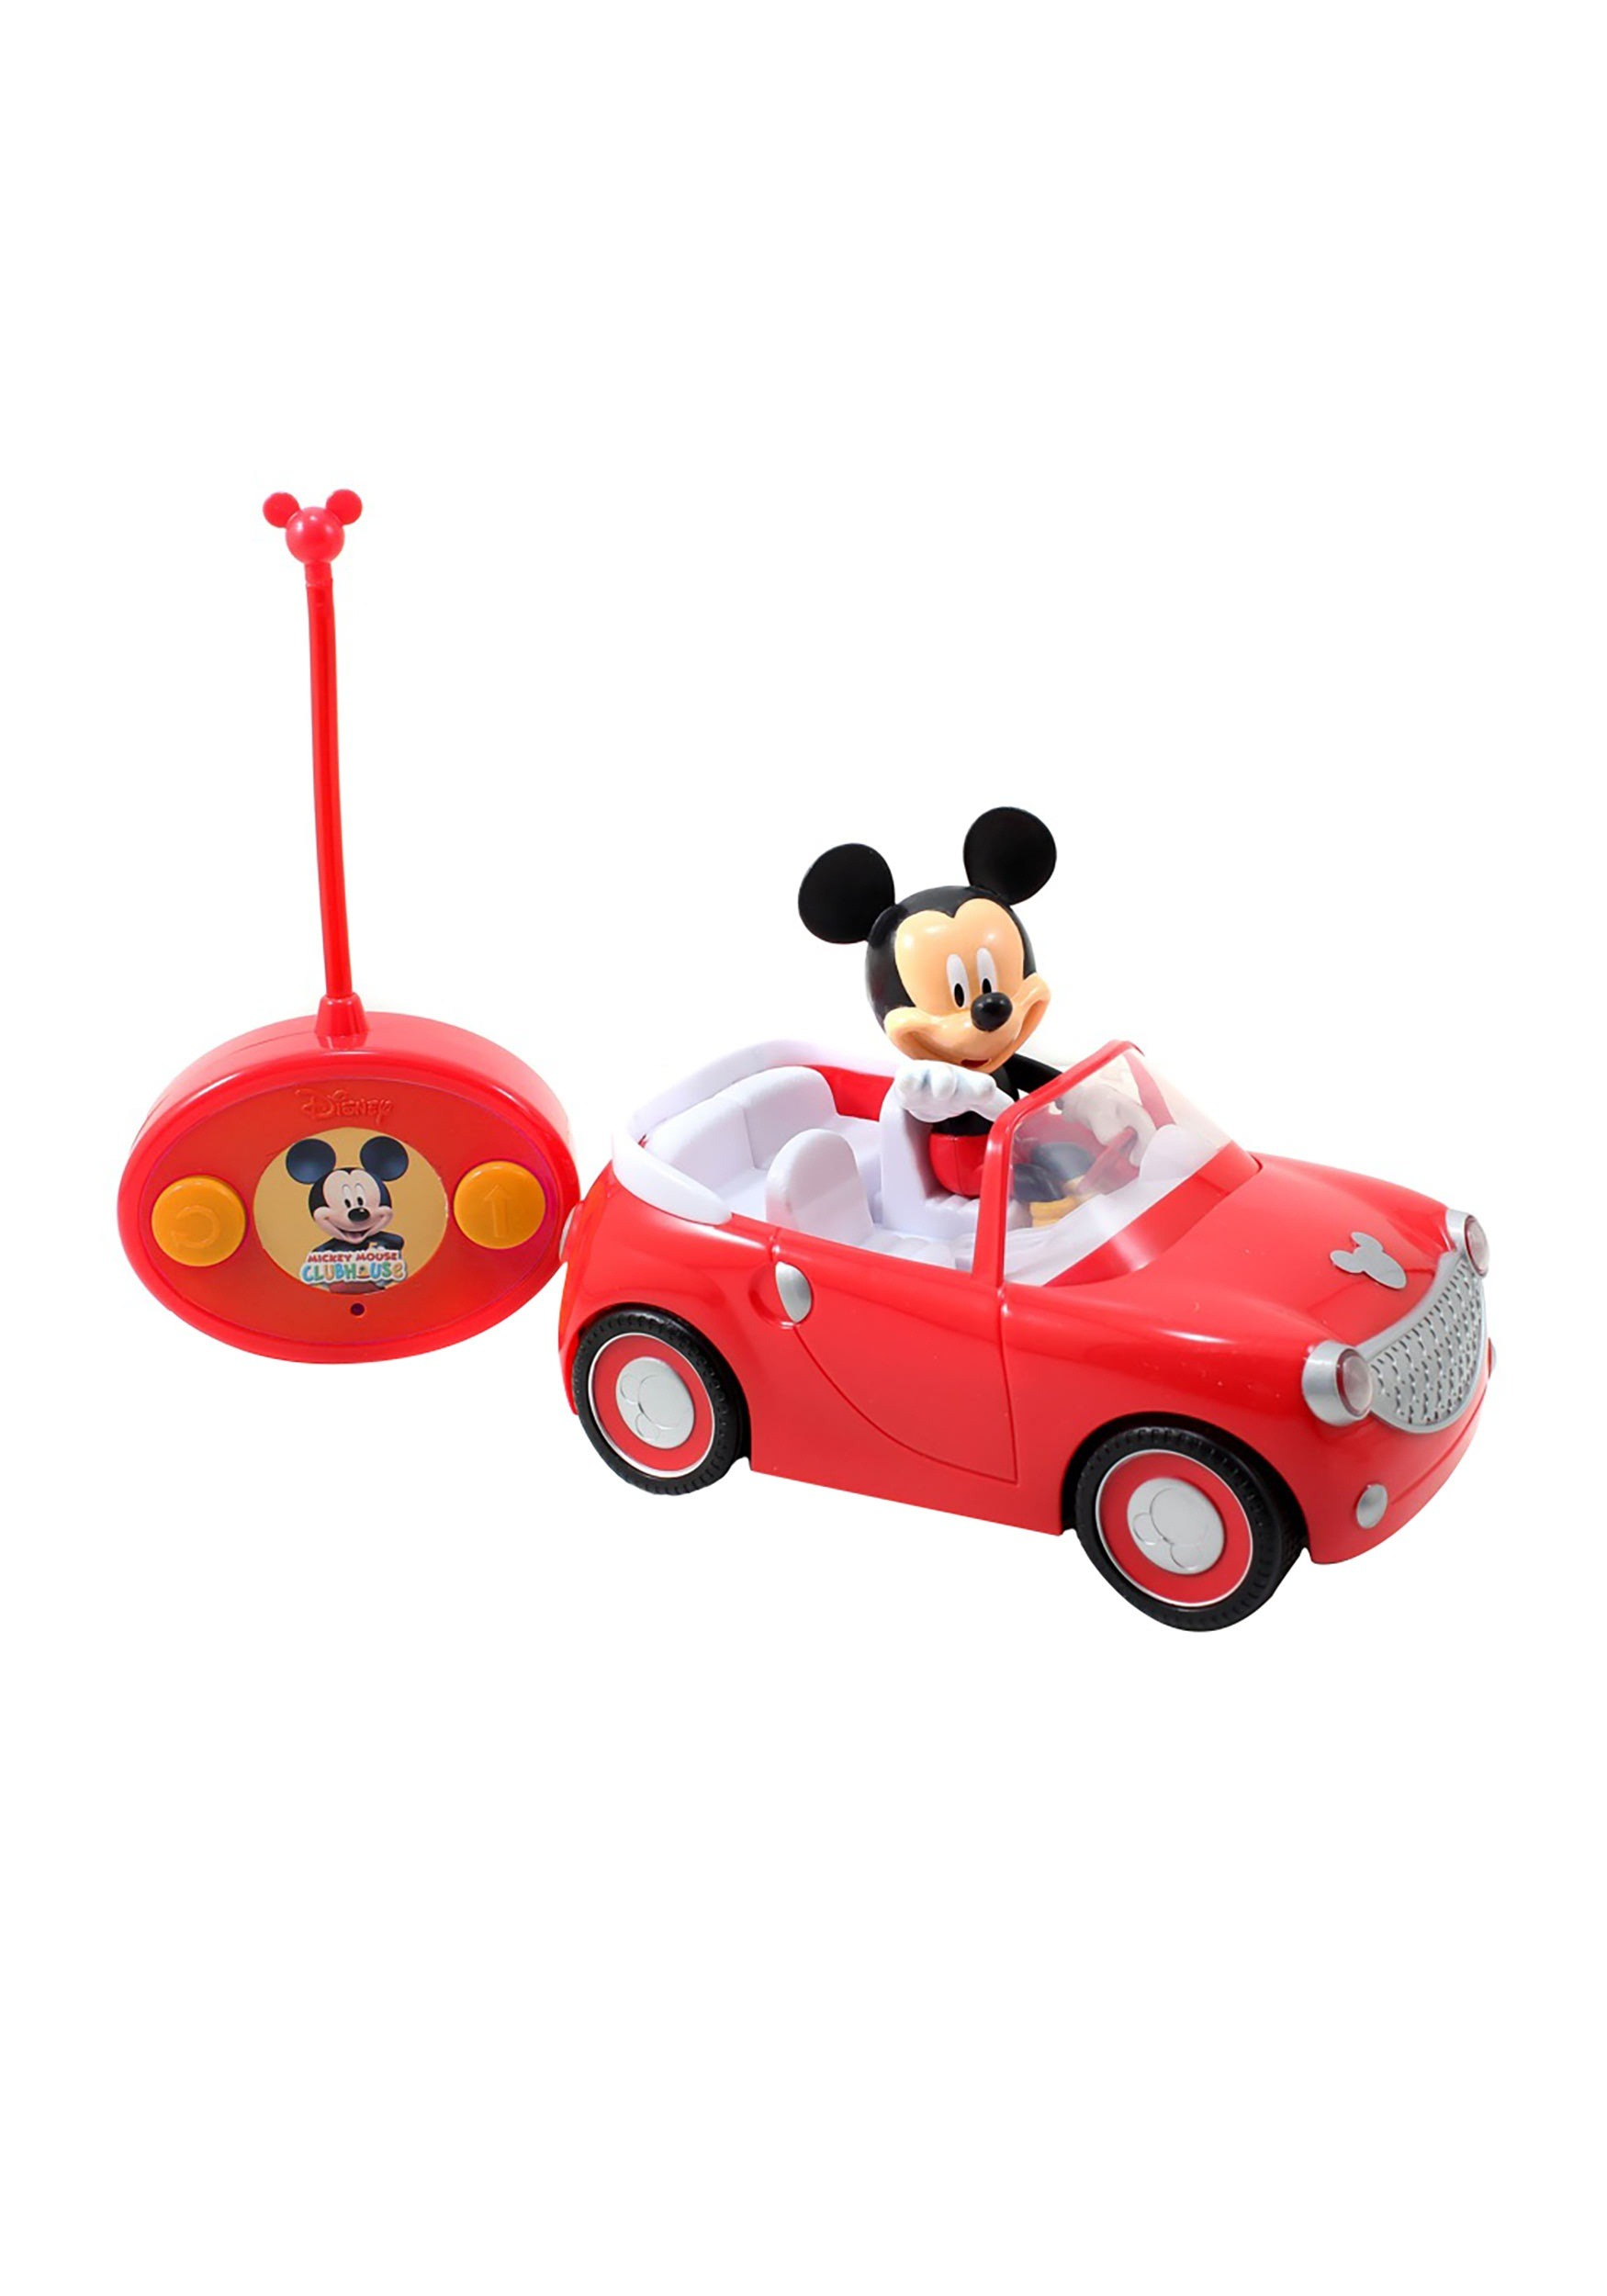 Disney Mickey Mouse R/C Roadster